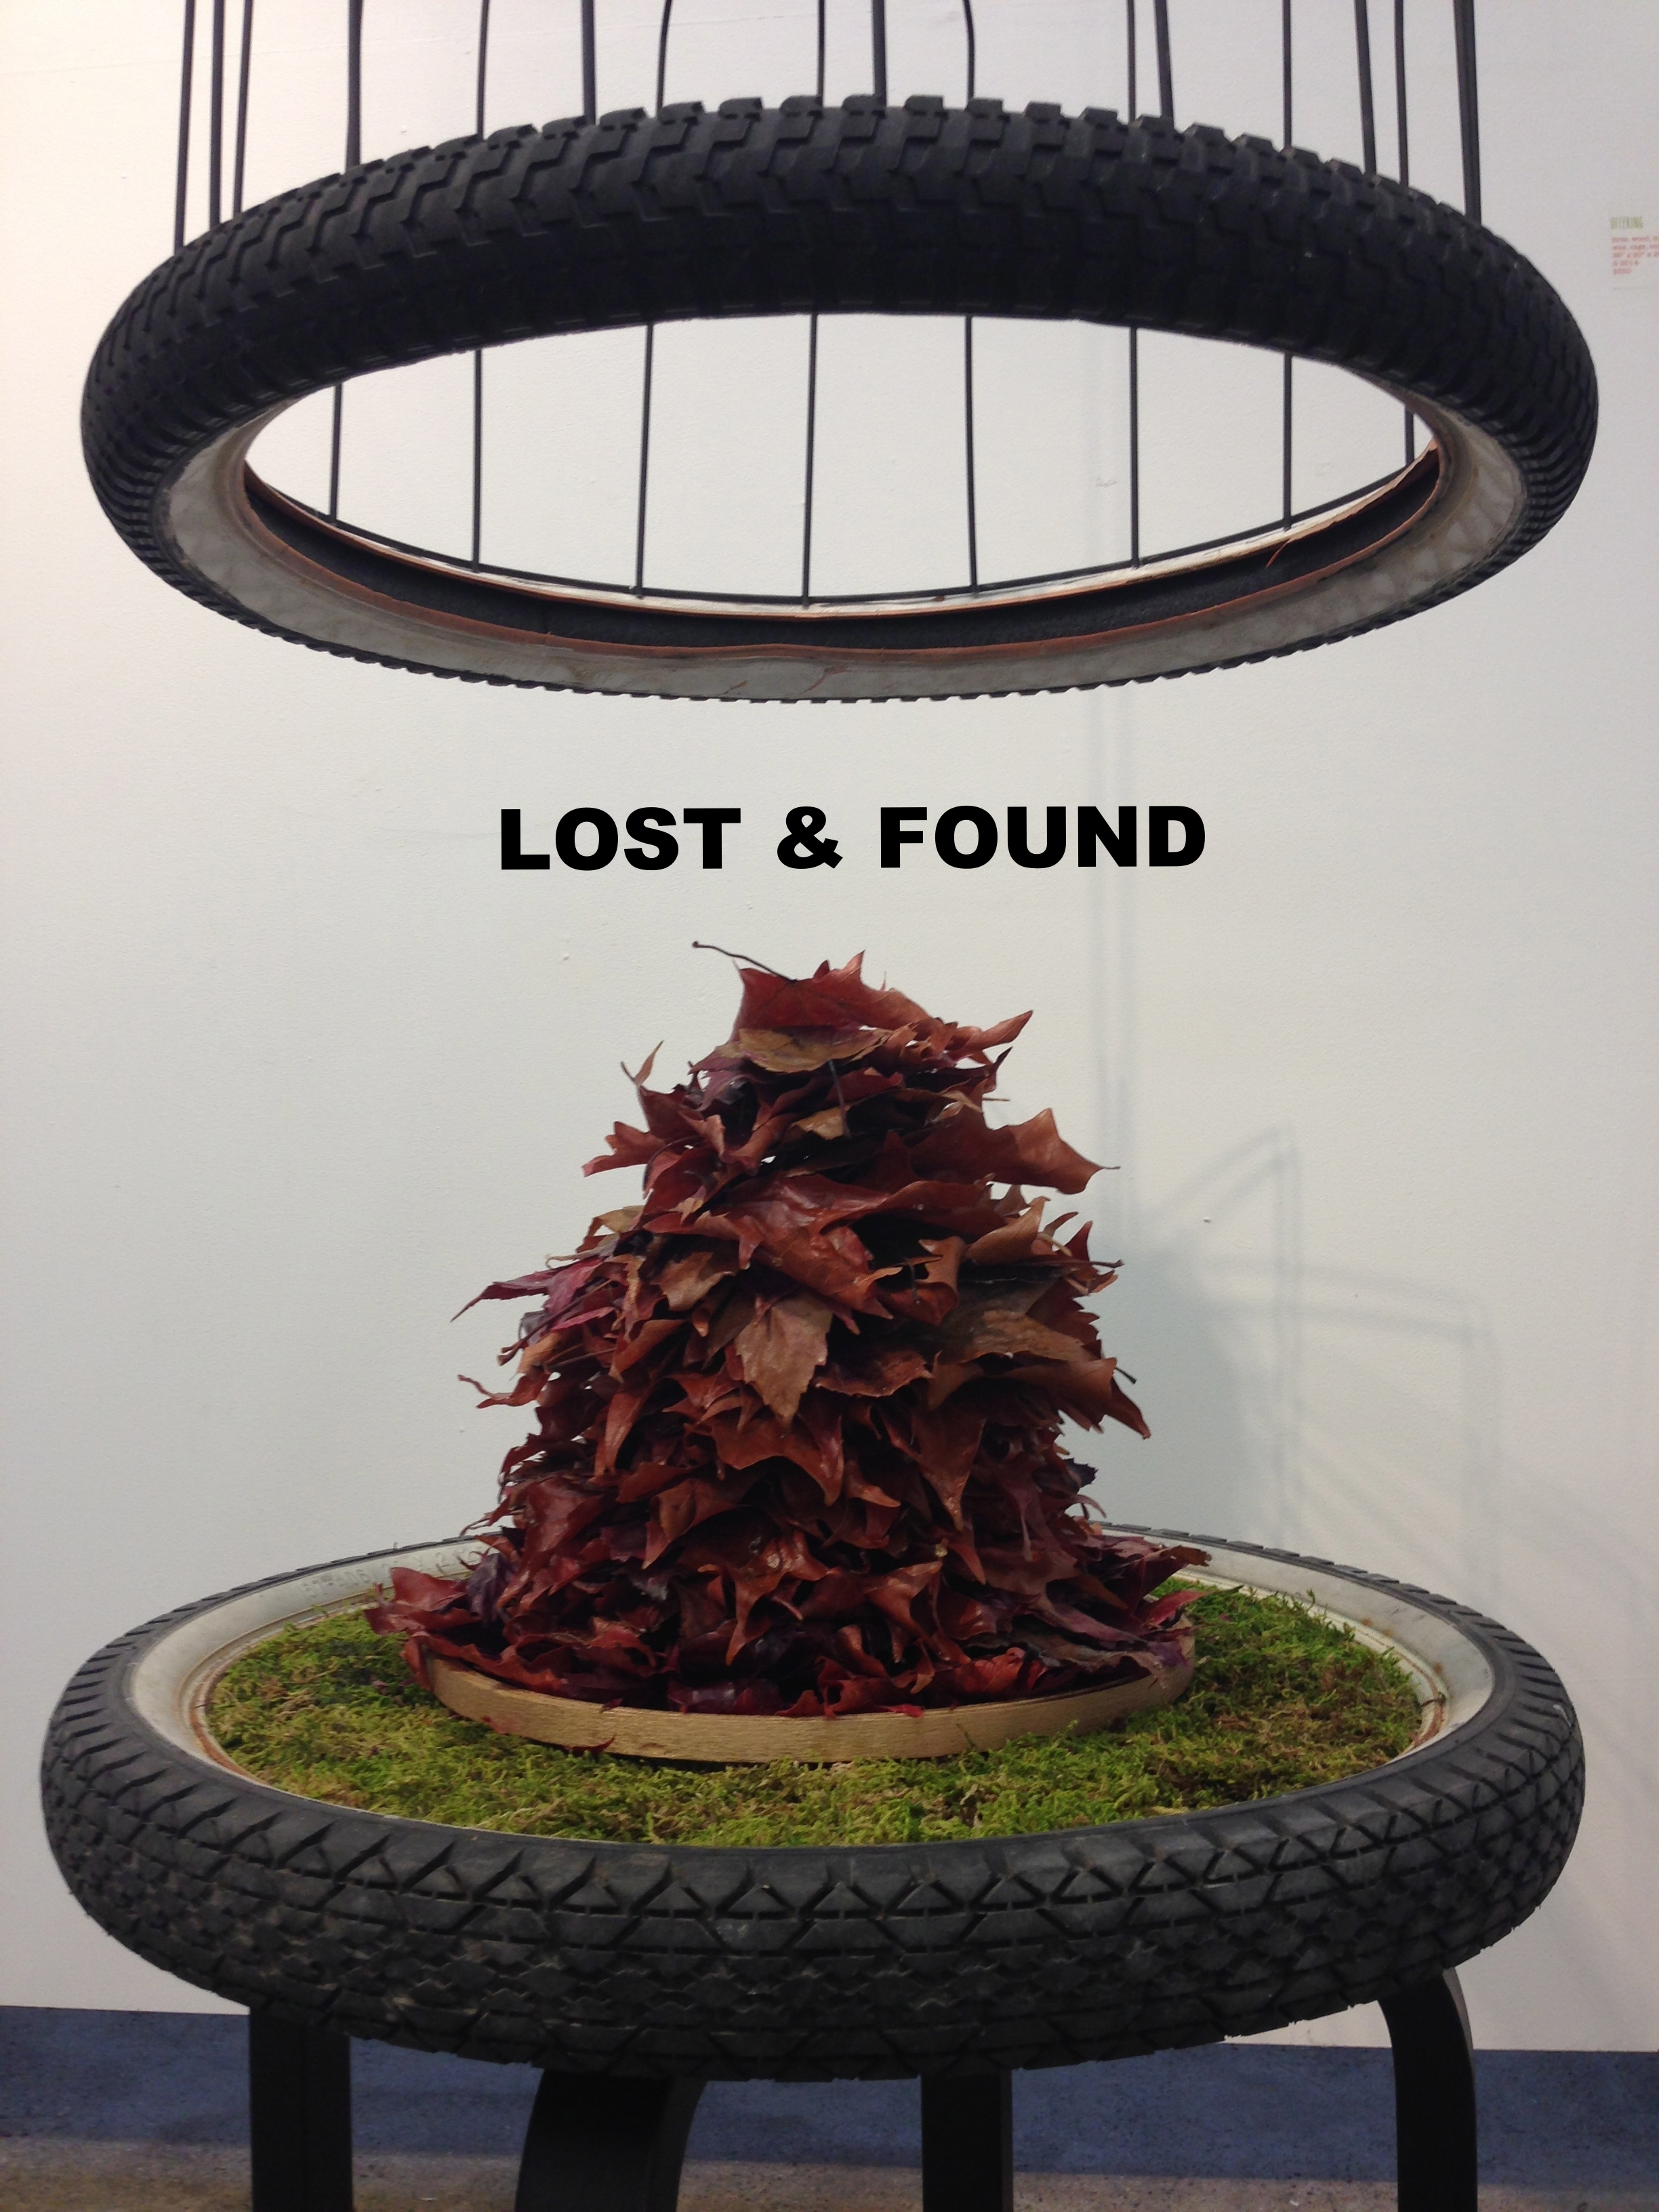 Lost & Found Exhibition - Des Moines Social Club January 2015